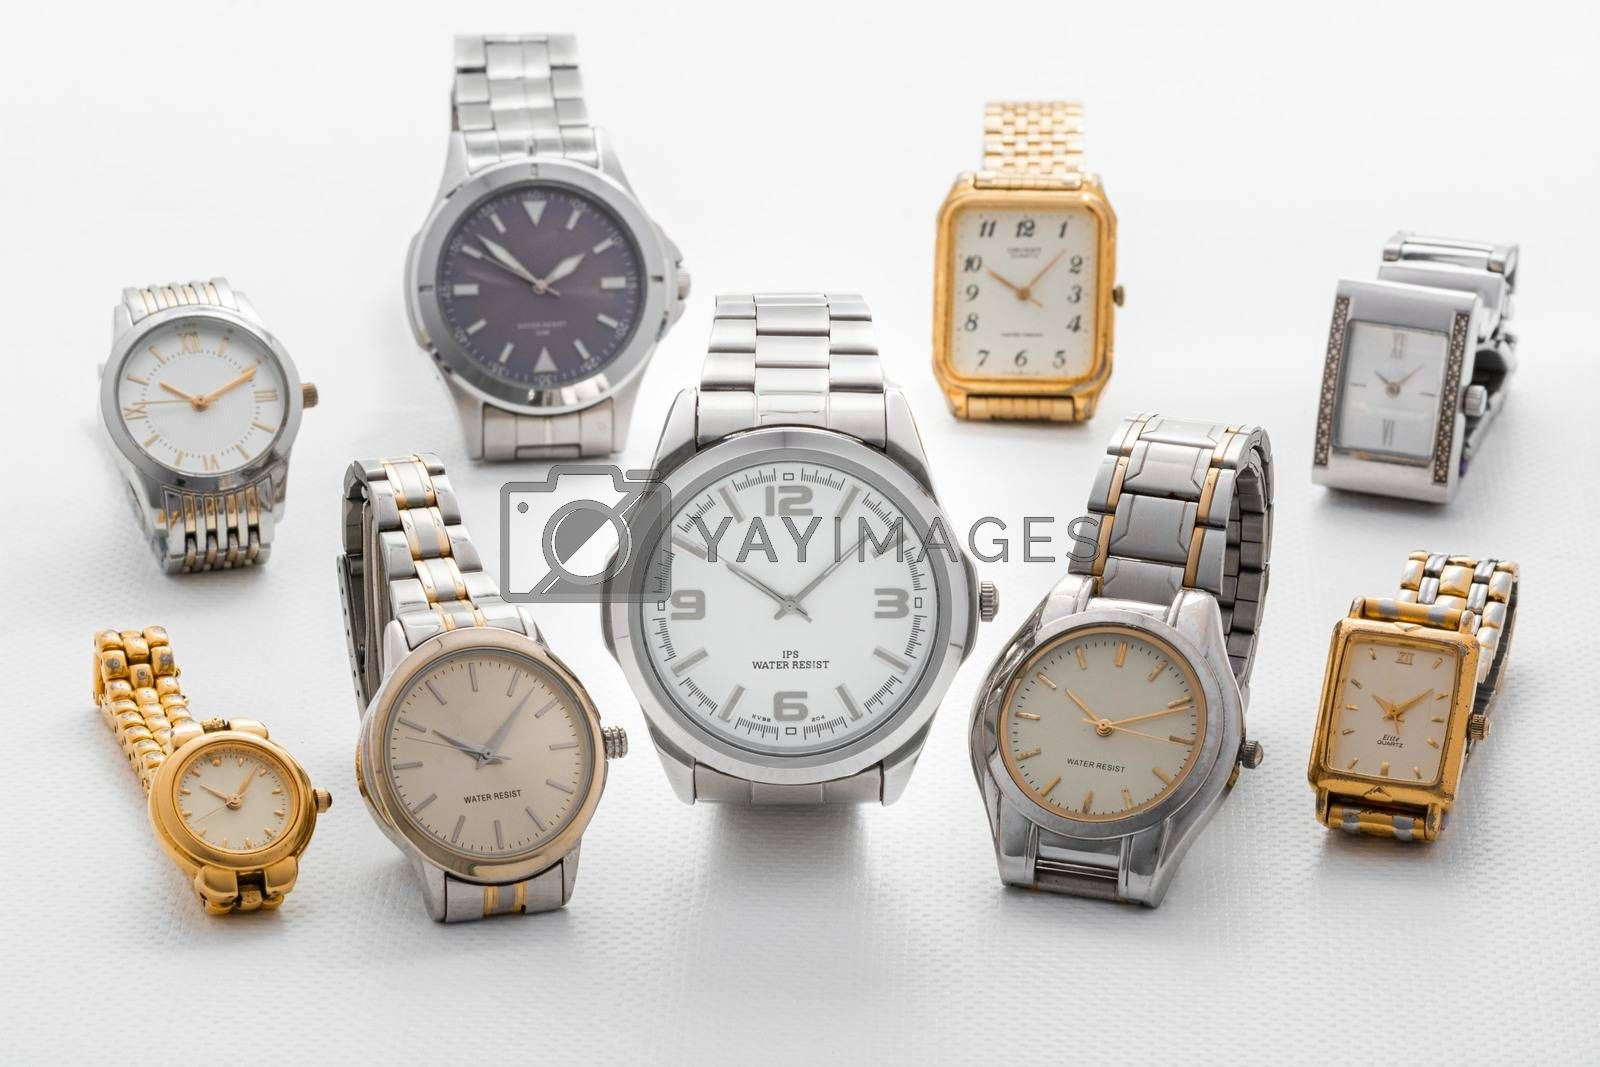 elegant and classic silver and gold wrist analog watches on white background for e-commerce